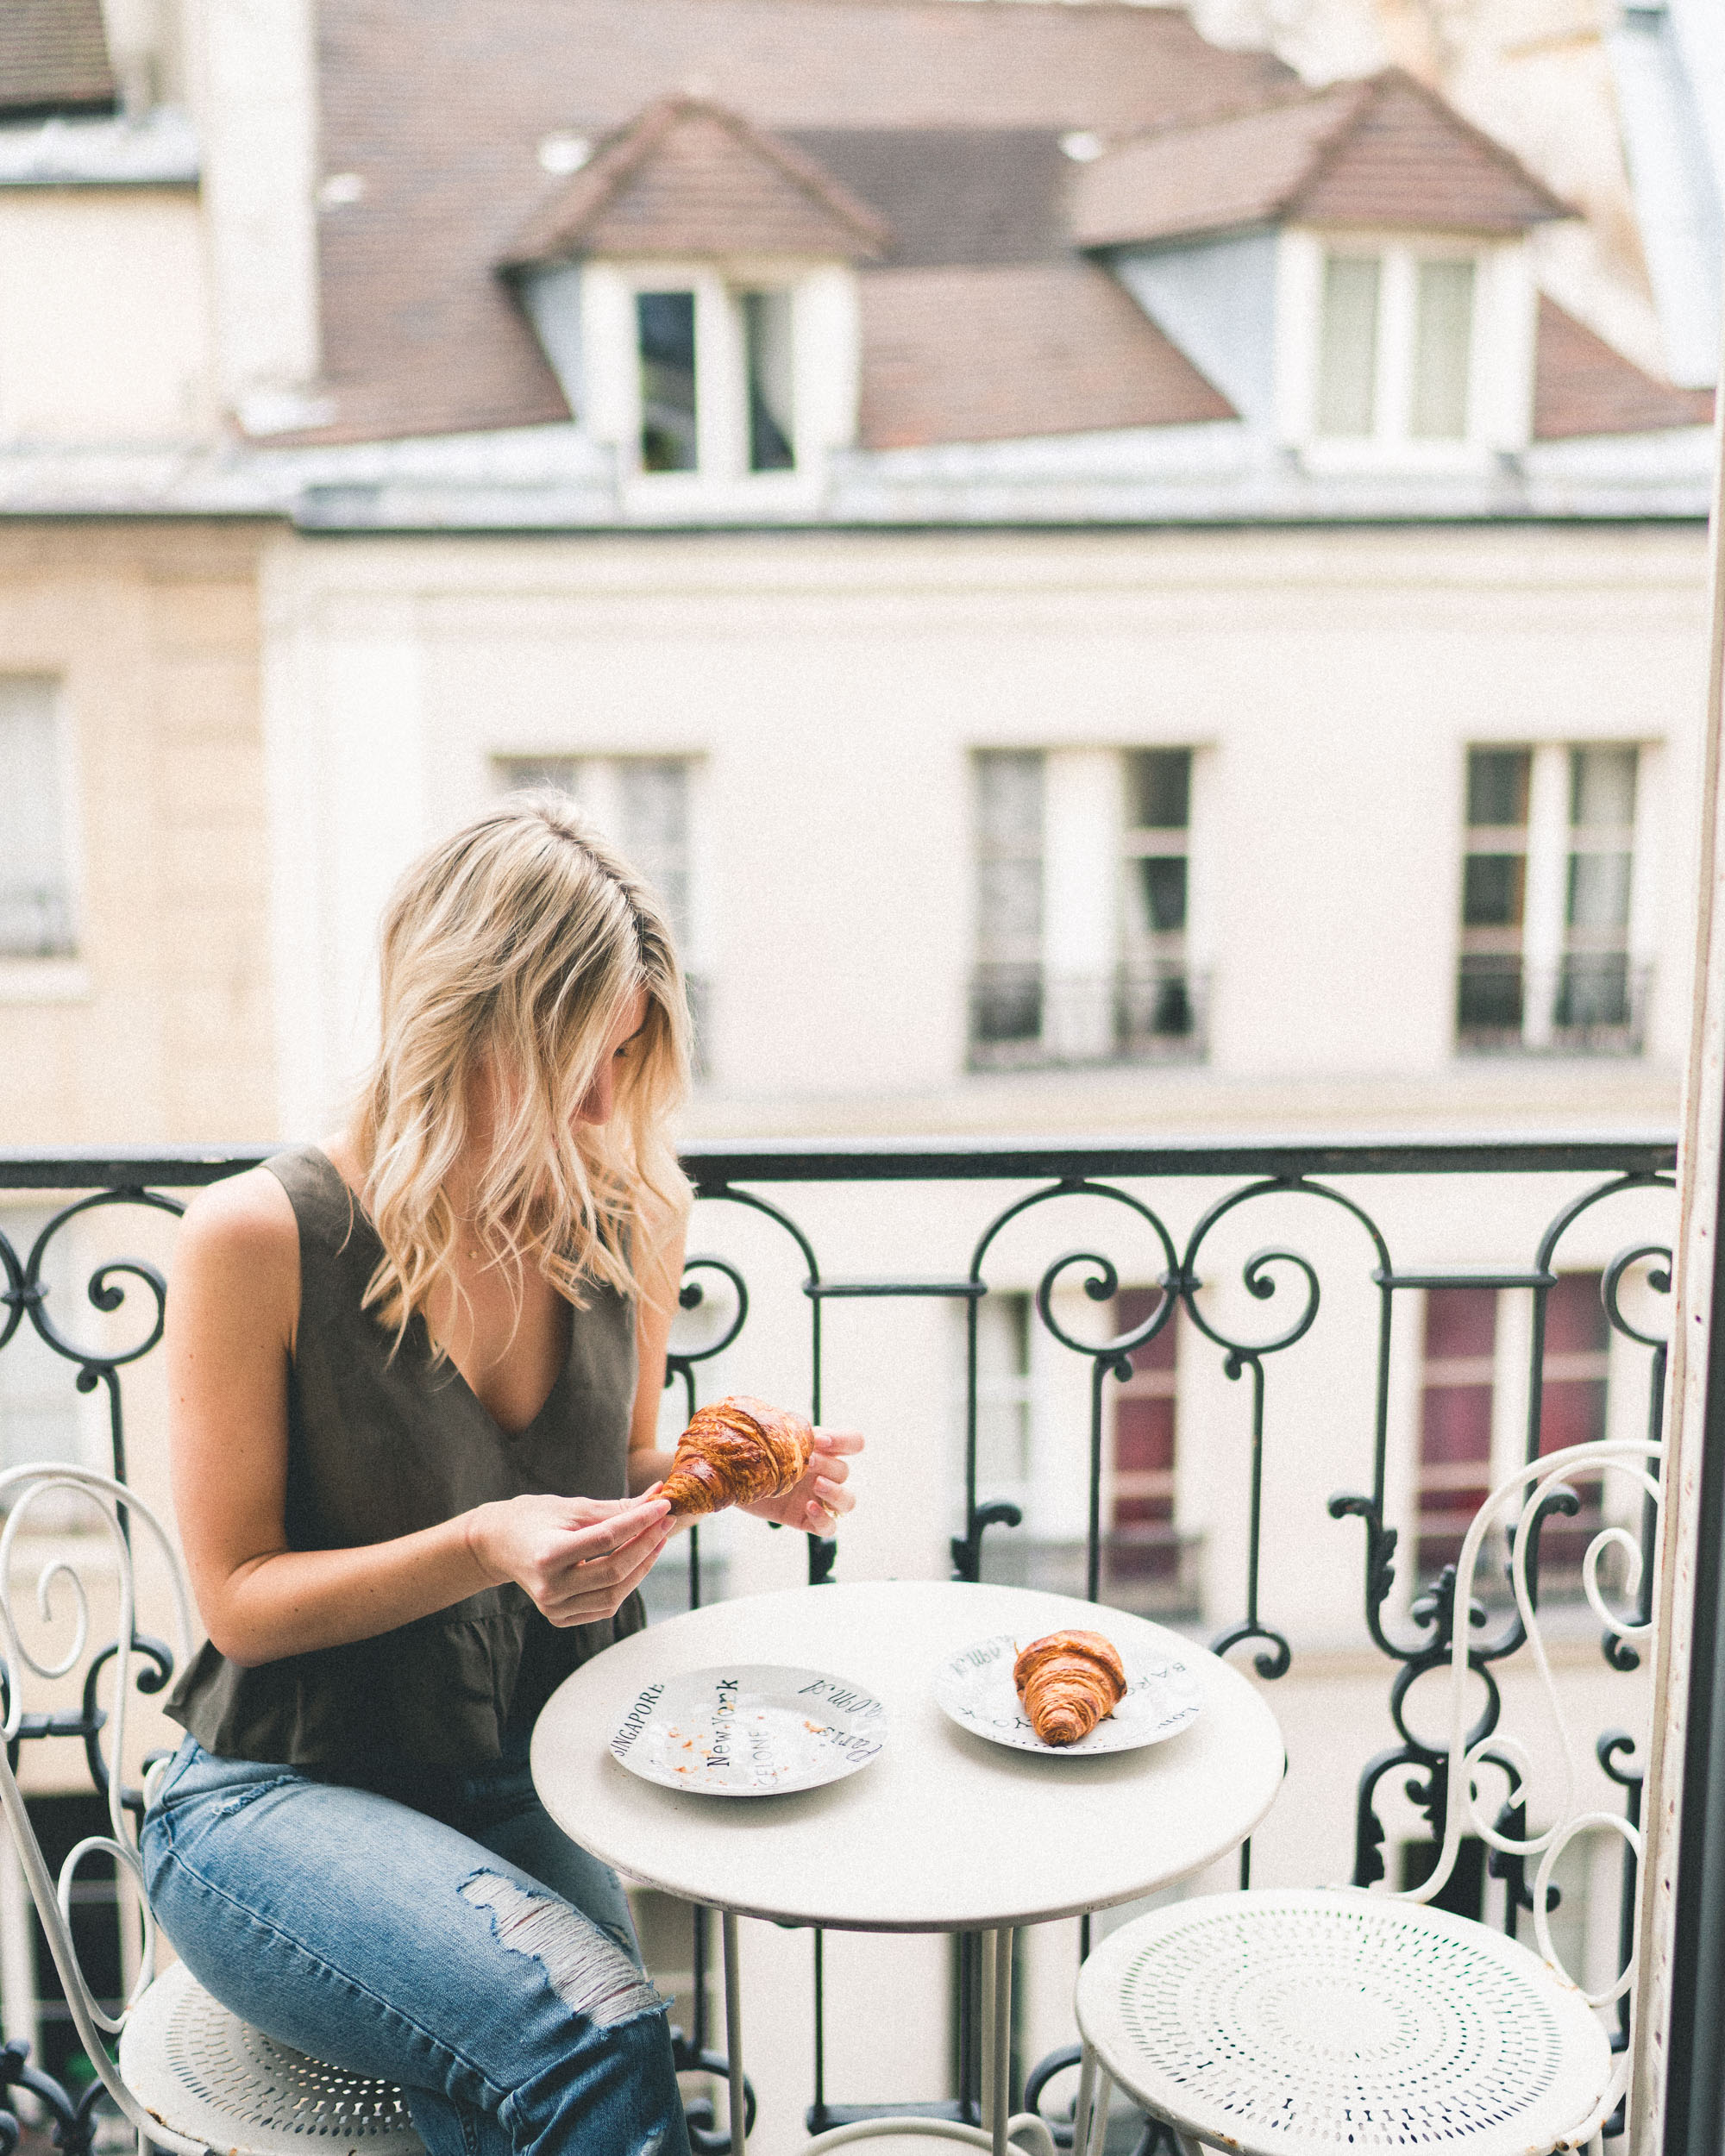 French croissants for breakfast in our paris airbnb - Complete Paris Travel Guide